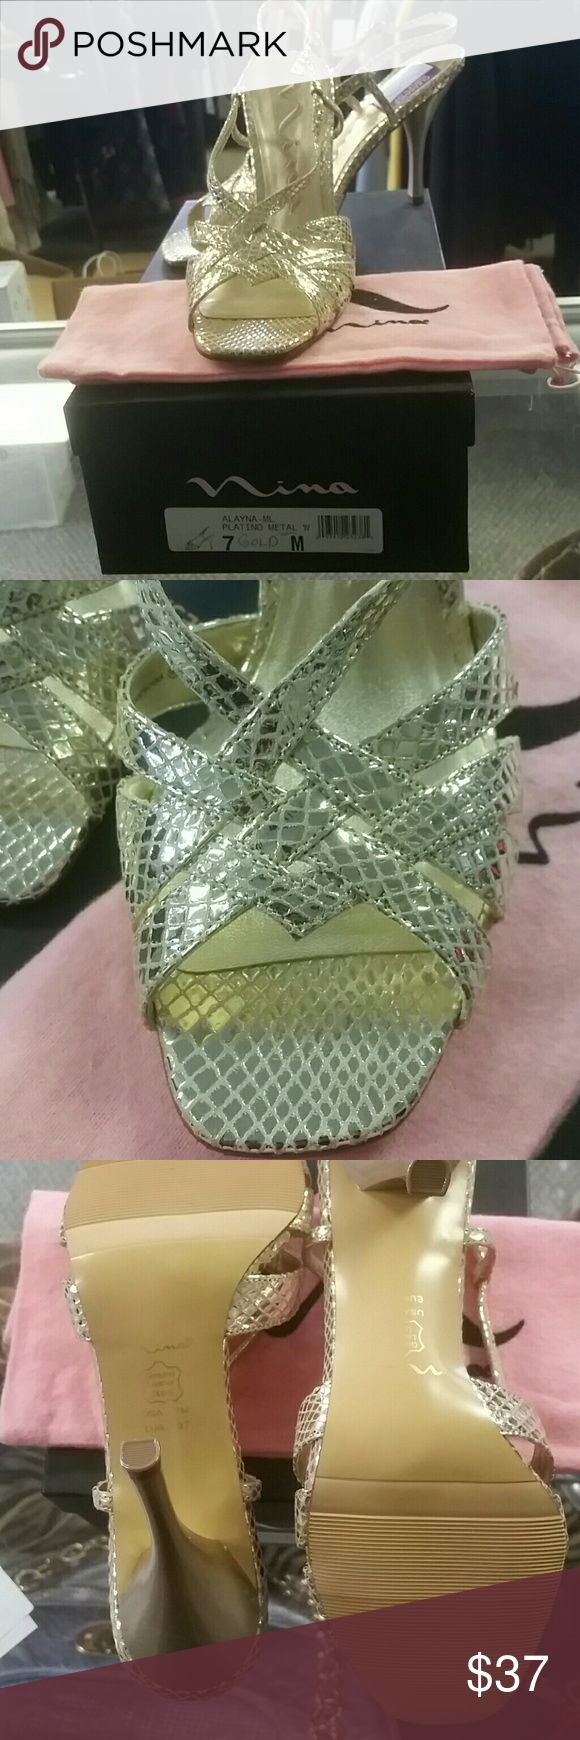 Nina shoes Gold strap slingback shoes. Worn once on carpet. Comes with pink dustbag. Nina Shoes Heels